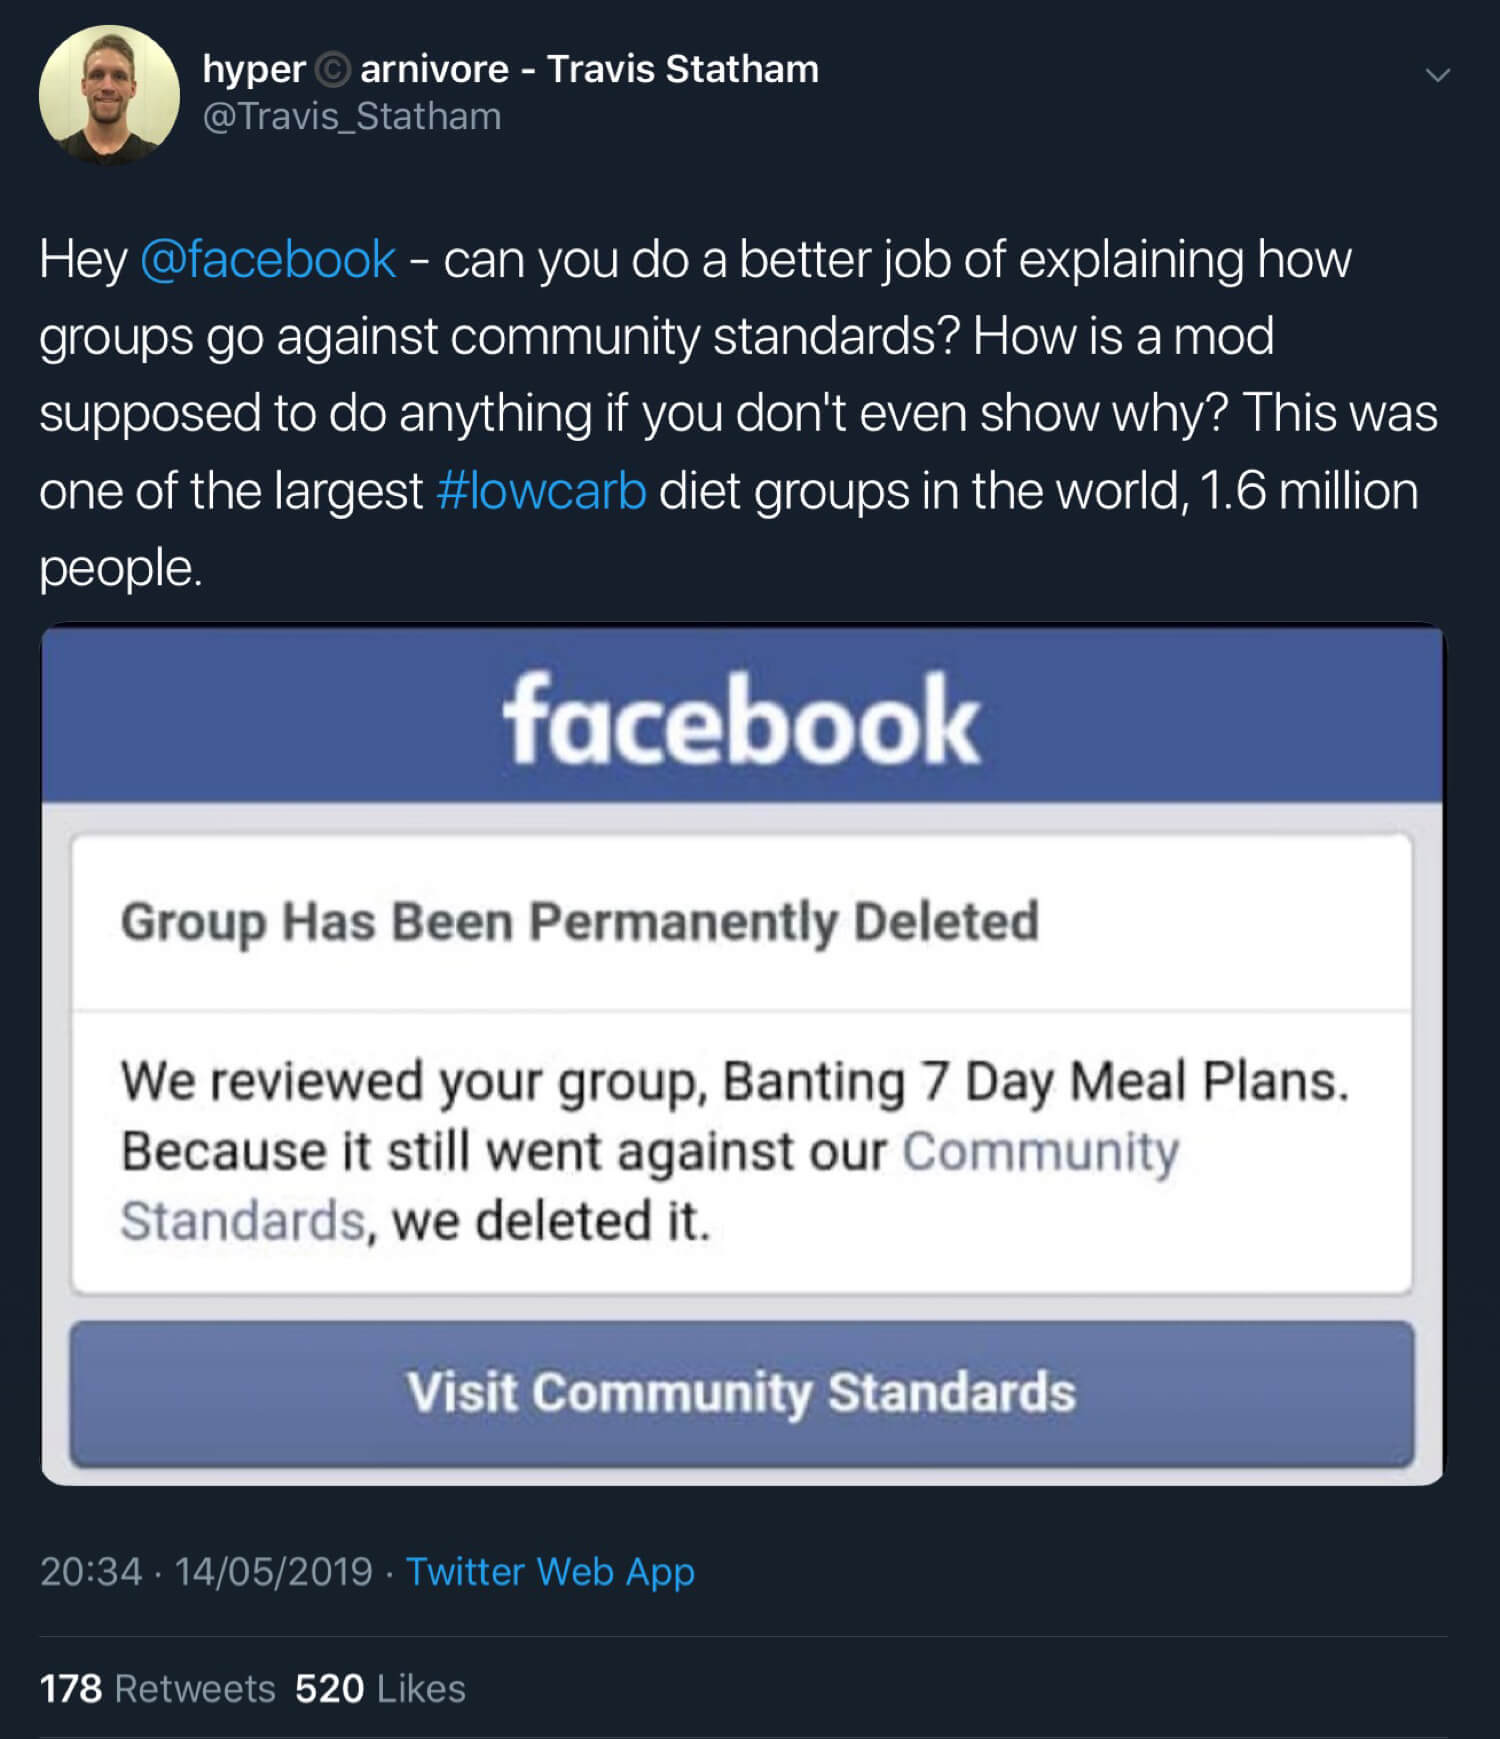 Travis Statham confirming that Facebook has deleted the Banting 7 Day Meal Plans group.